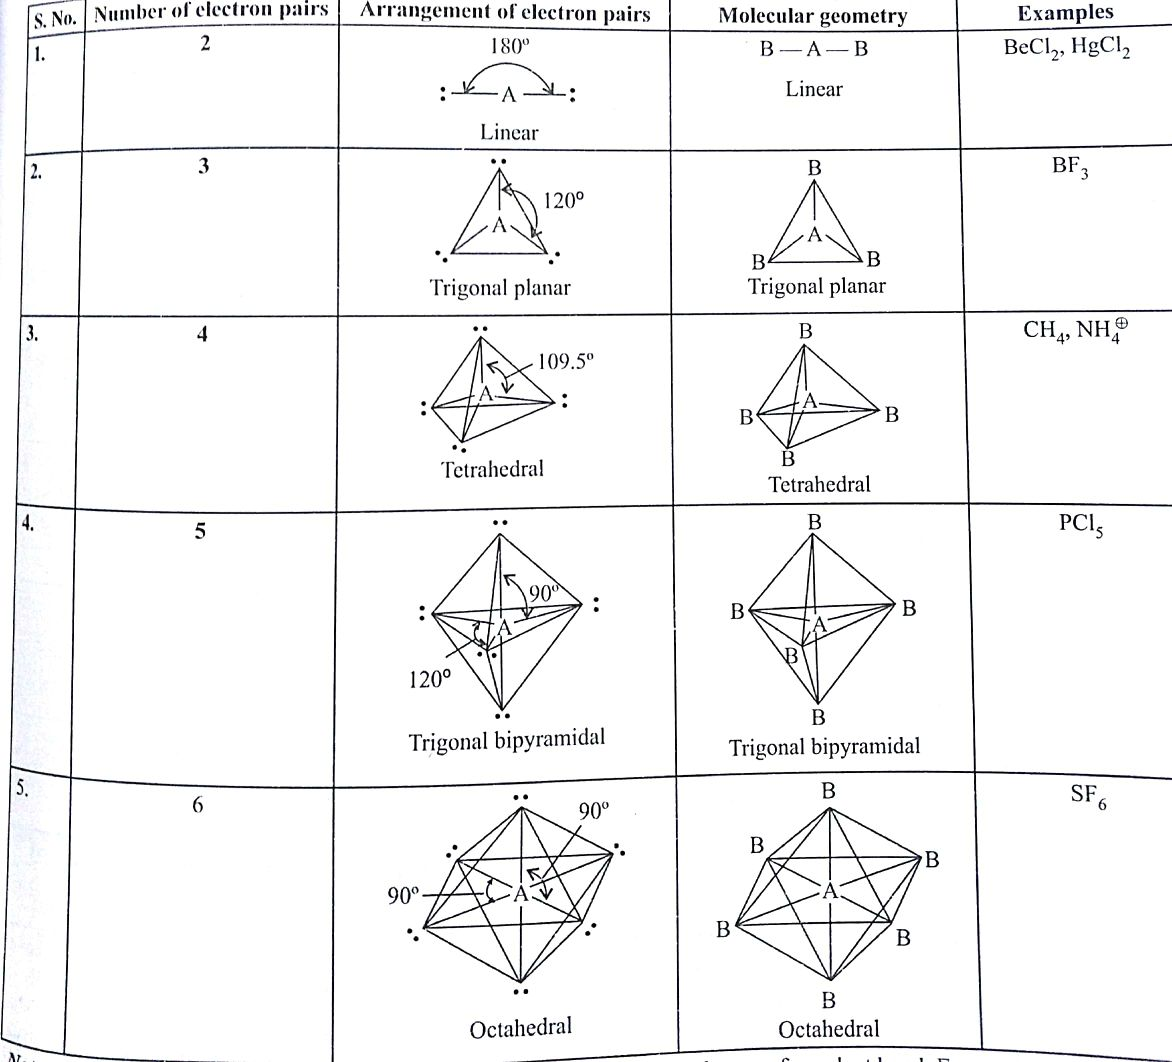 I Have A Doubt Kindly Clarify The Correct Geometry And